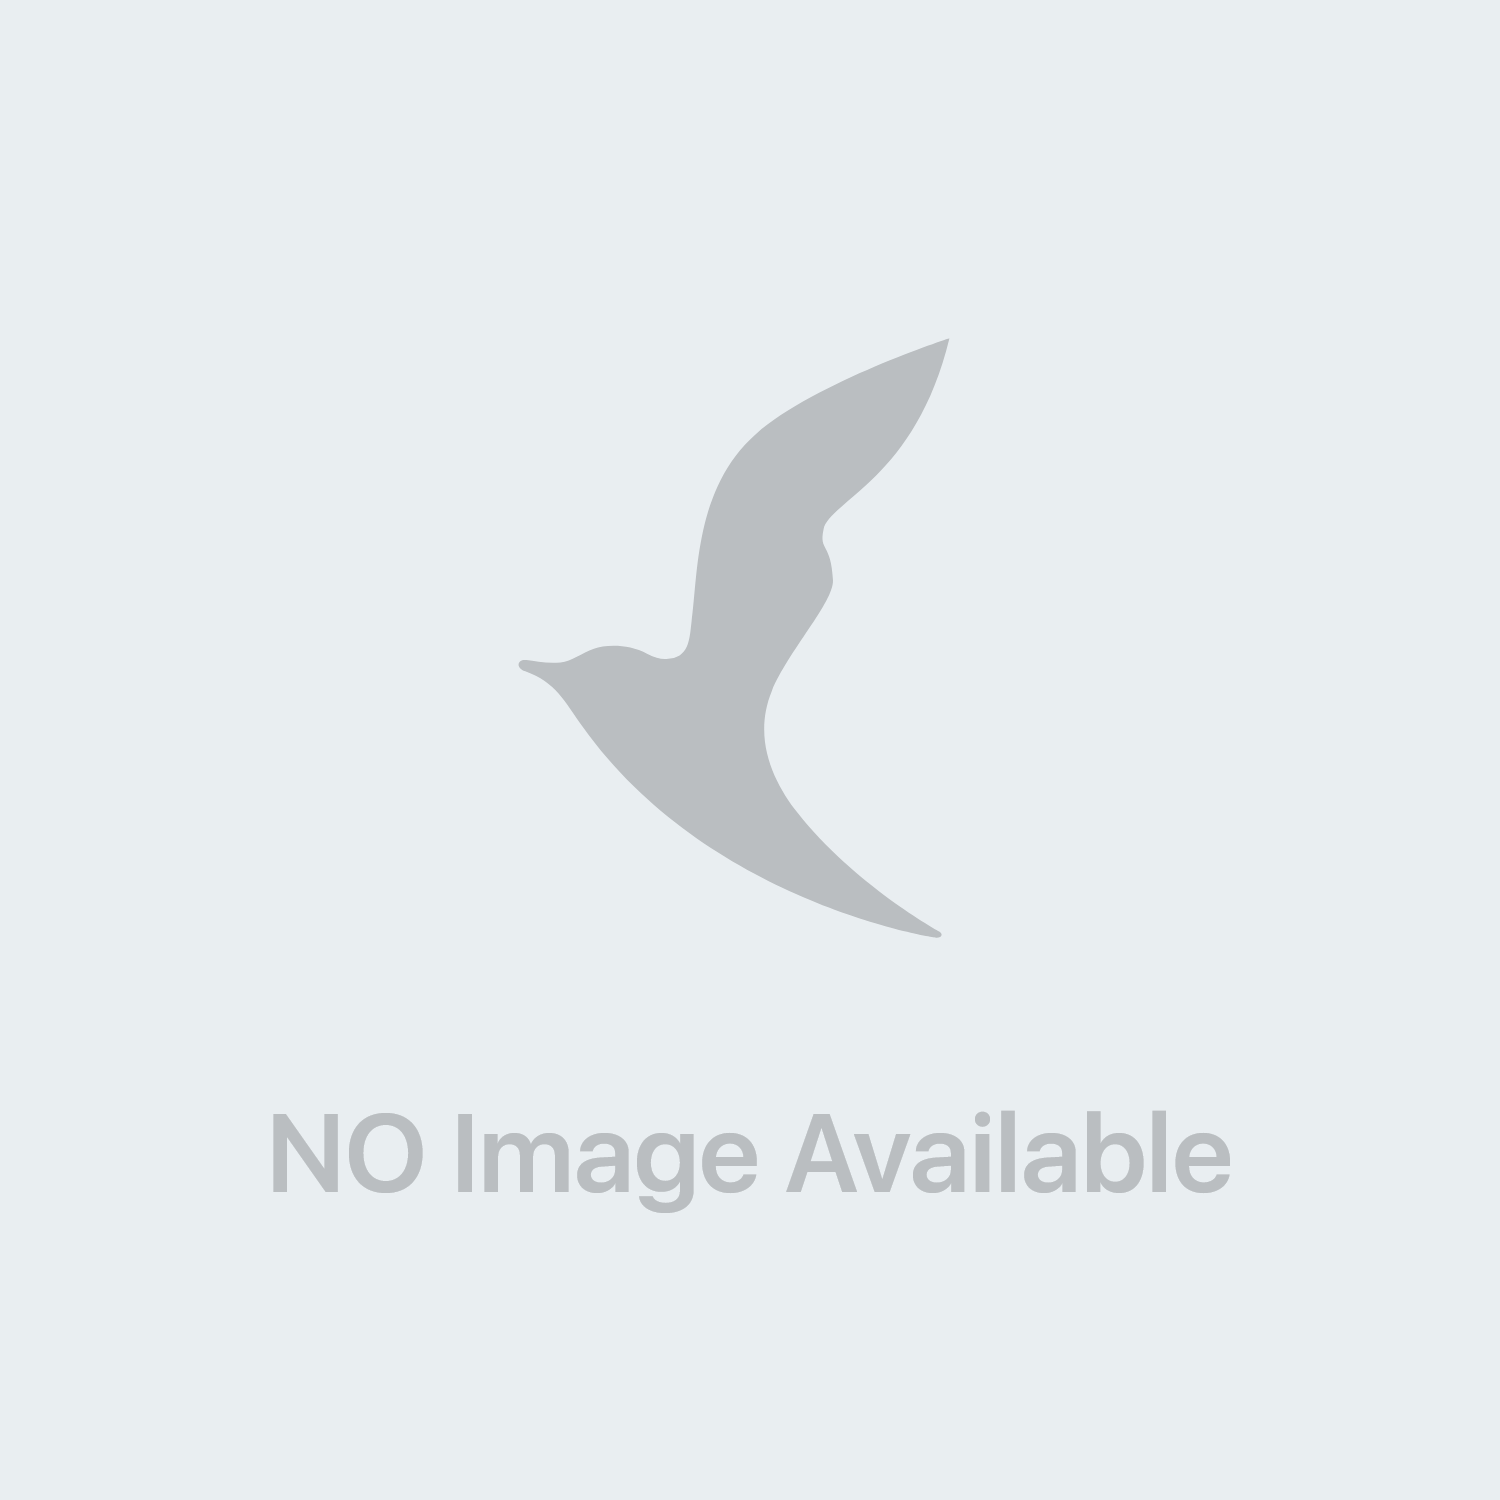 Darphin Melaperfect Crema Idratante Illuminante Viso Antimacchie 50 ml